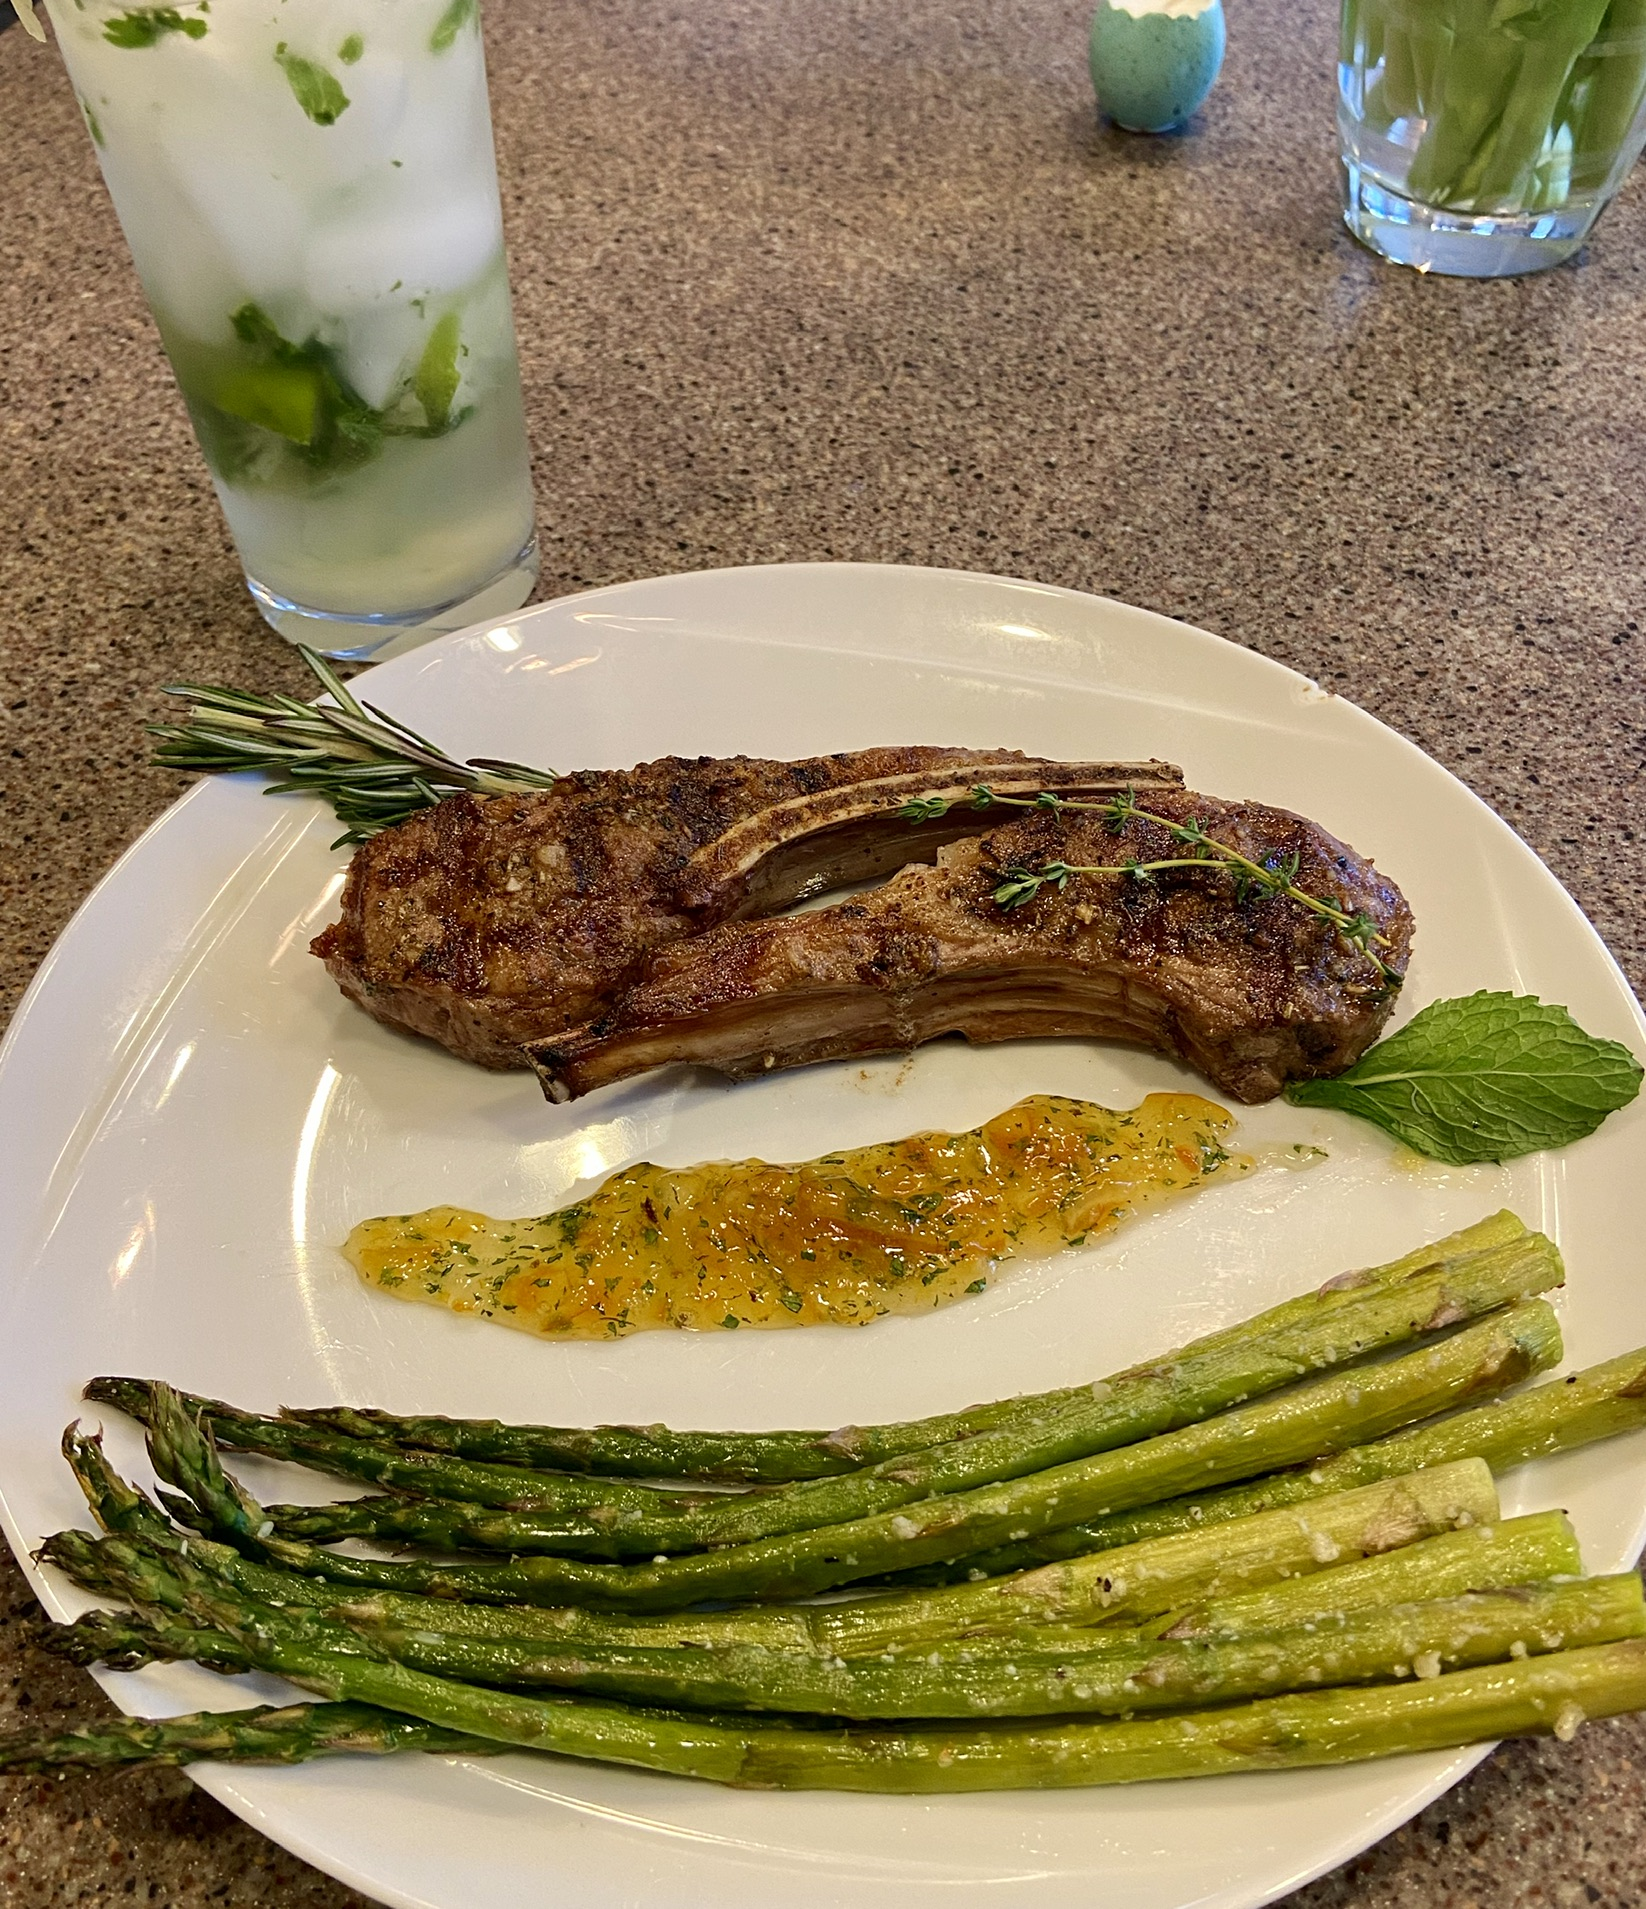 Chef John's Grilled Lamb with Mint Orange Sauce